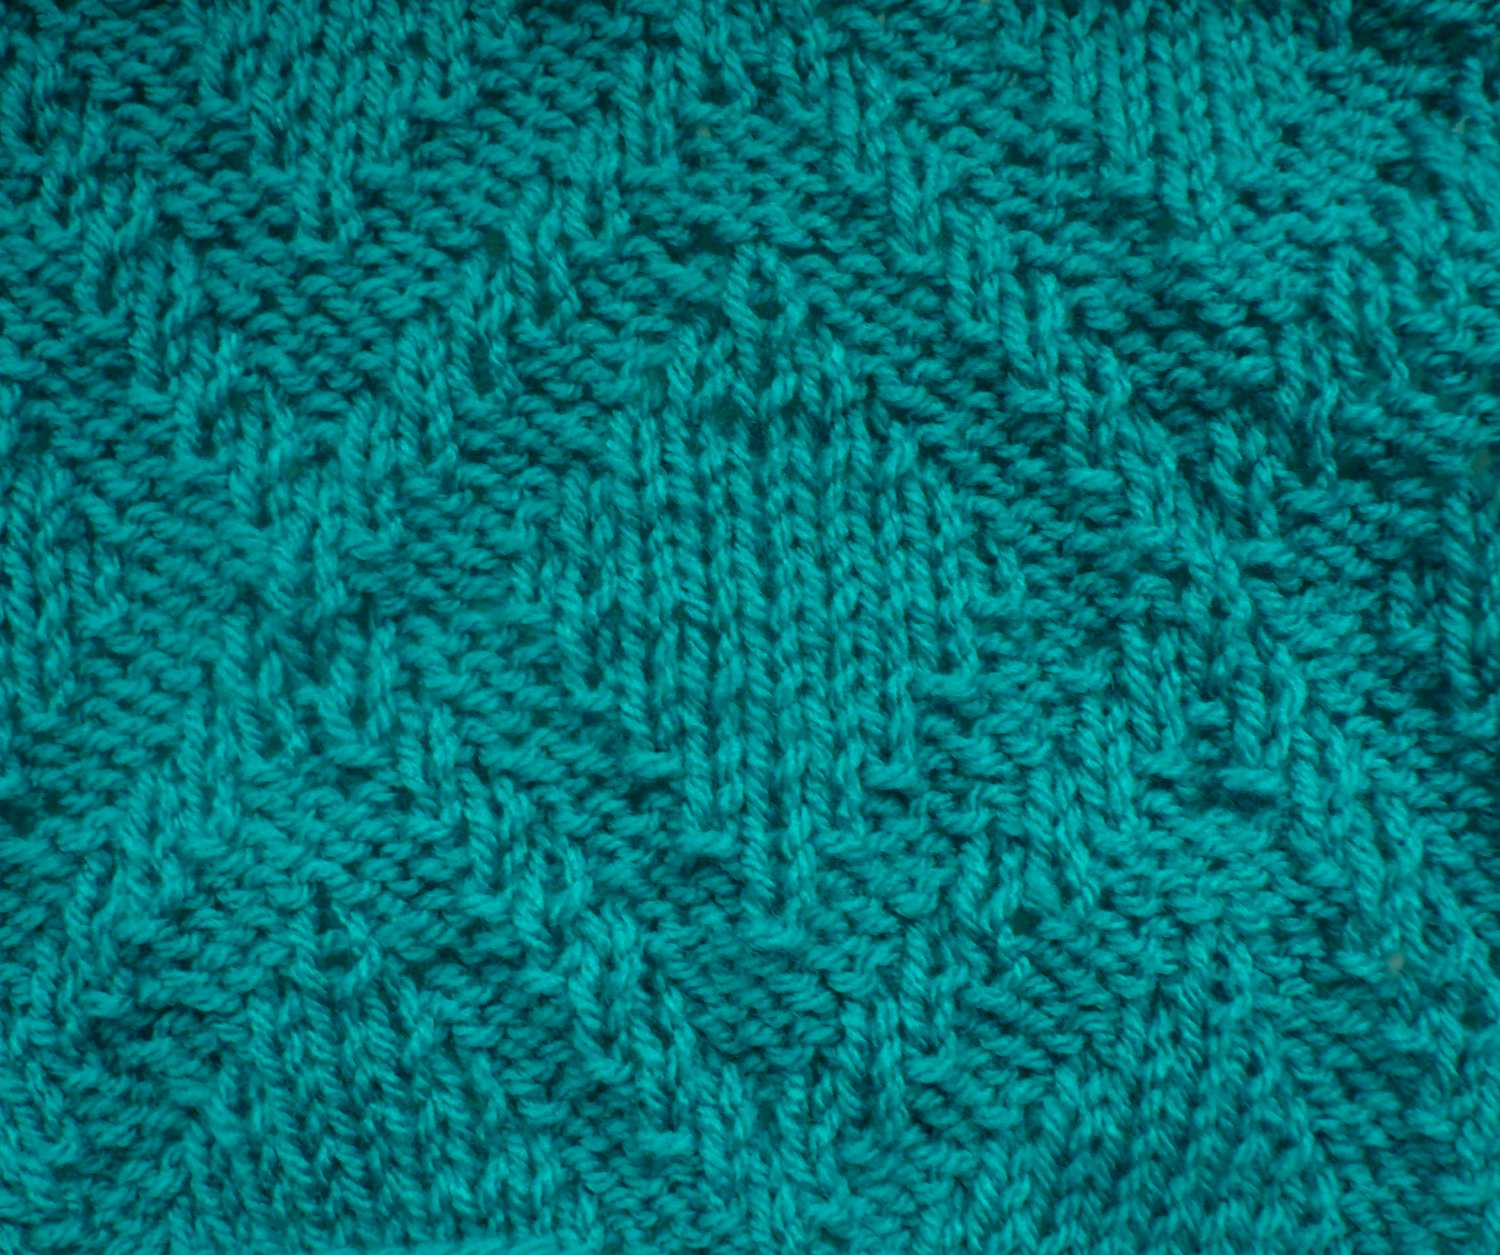 fabric cloth, download photo, background, texture, blue knitted background texture